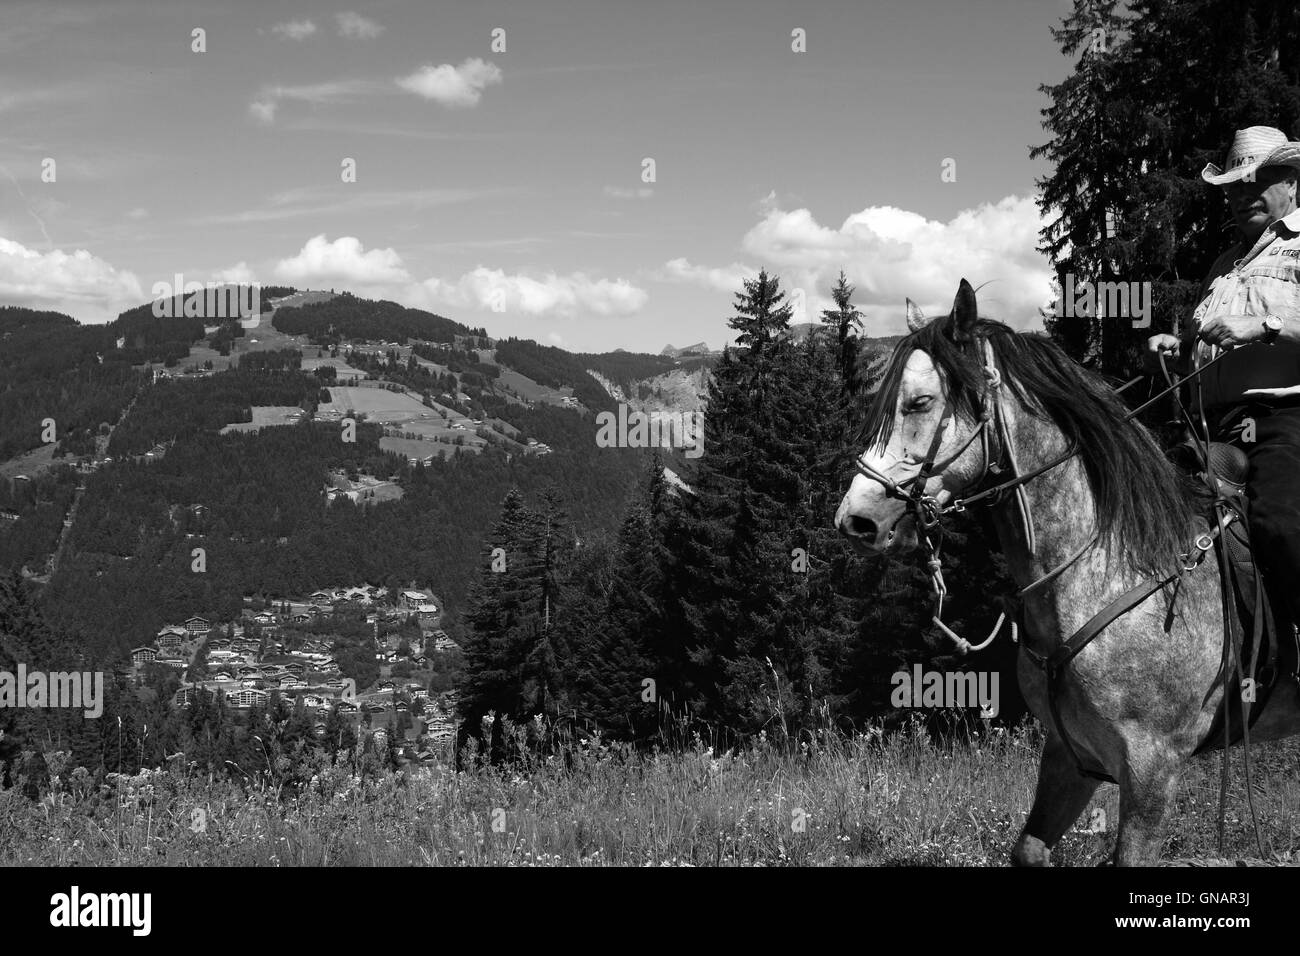 A black and white view in the French Alps with a horse and rider crossing the scene. Stock Photo